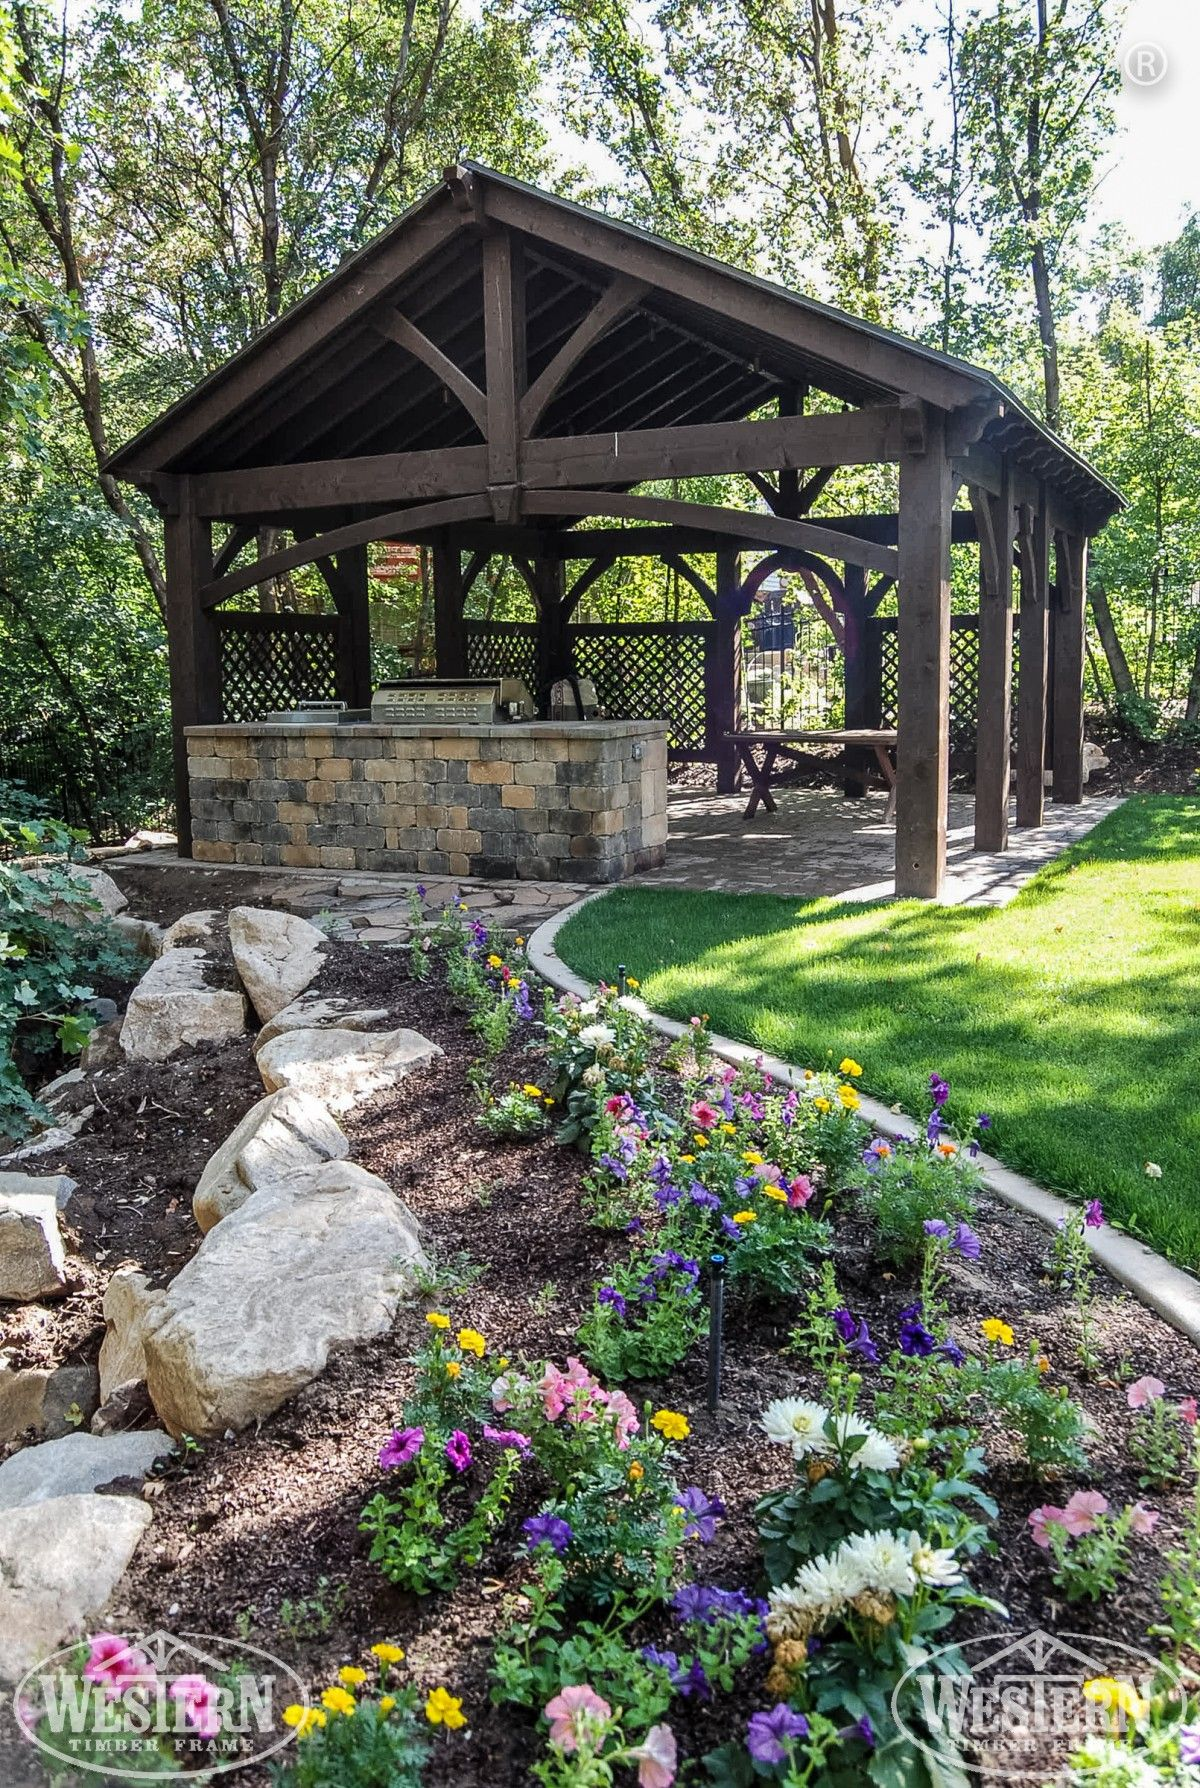 Gallery In 2019 Timber Frame Gazebos Pavilions